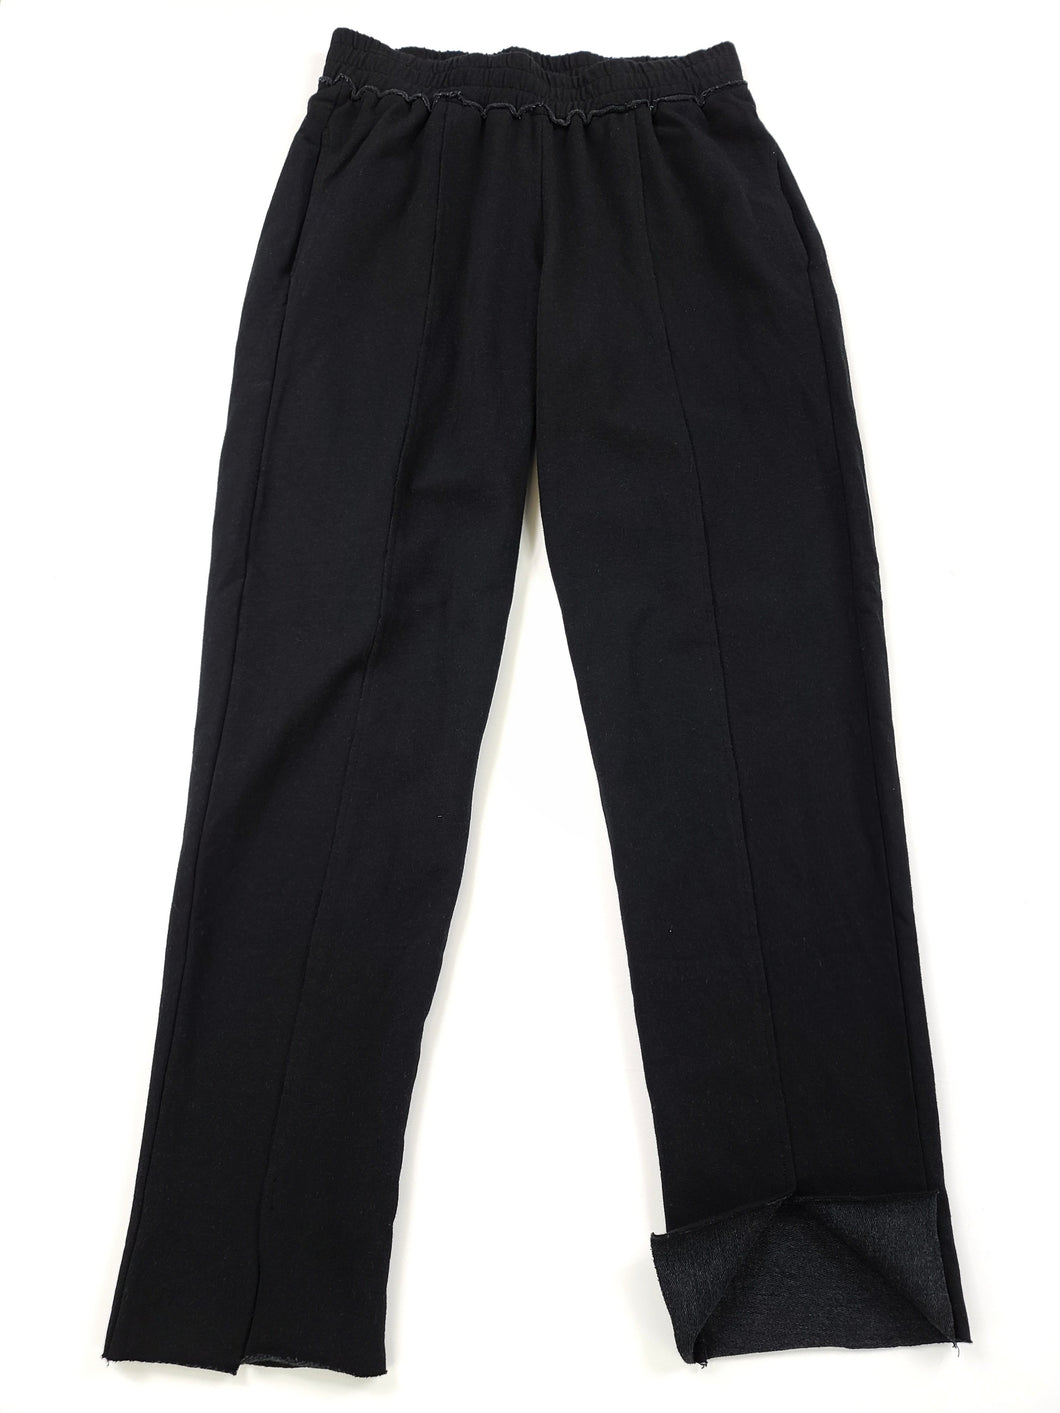 black elastic waist sweatpants with front seam and split bottom leg